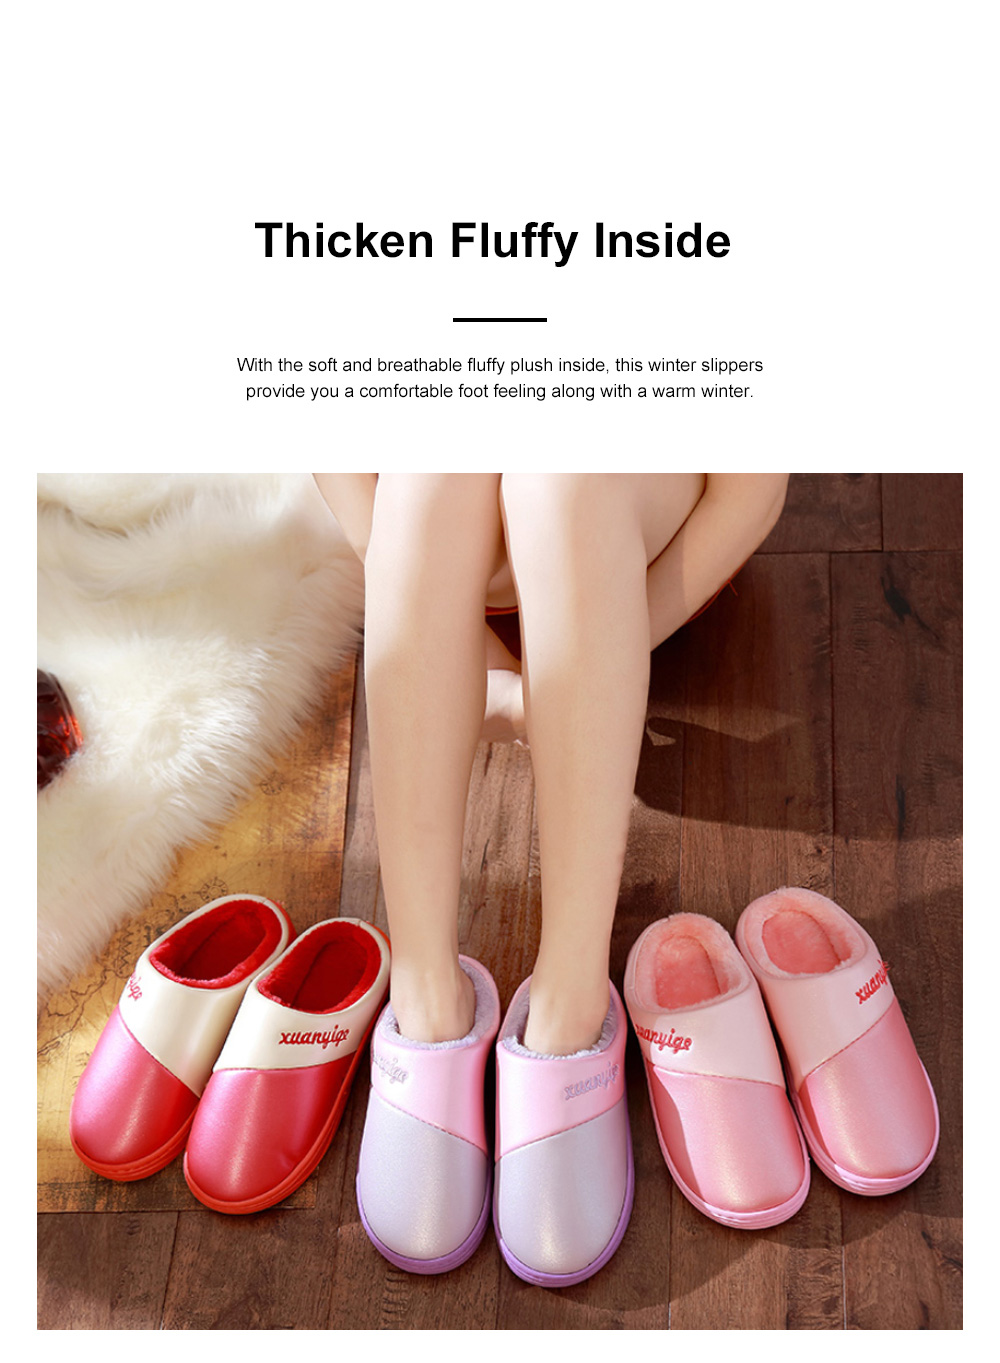 New Style Indoor PU Material Winter Slippers For Couples Home-used Warm Household Cute Water-proof & Skid-proof Slippers 1